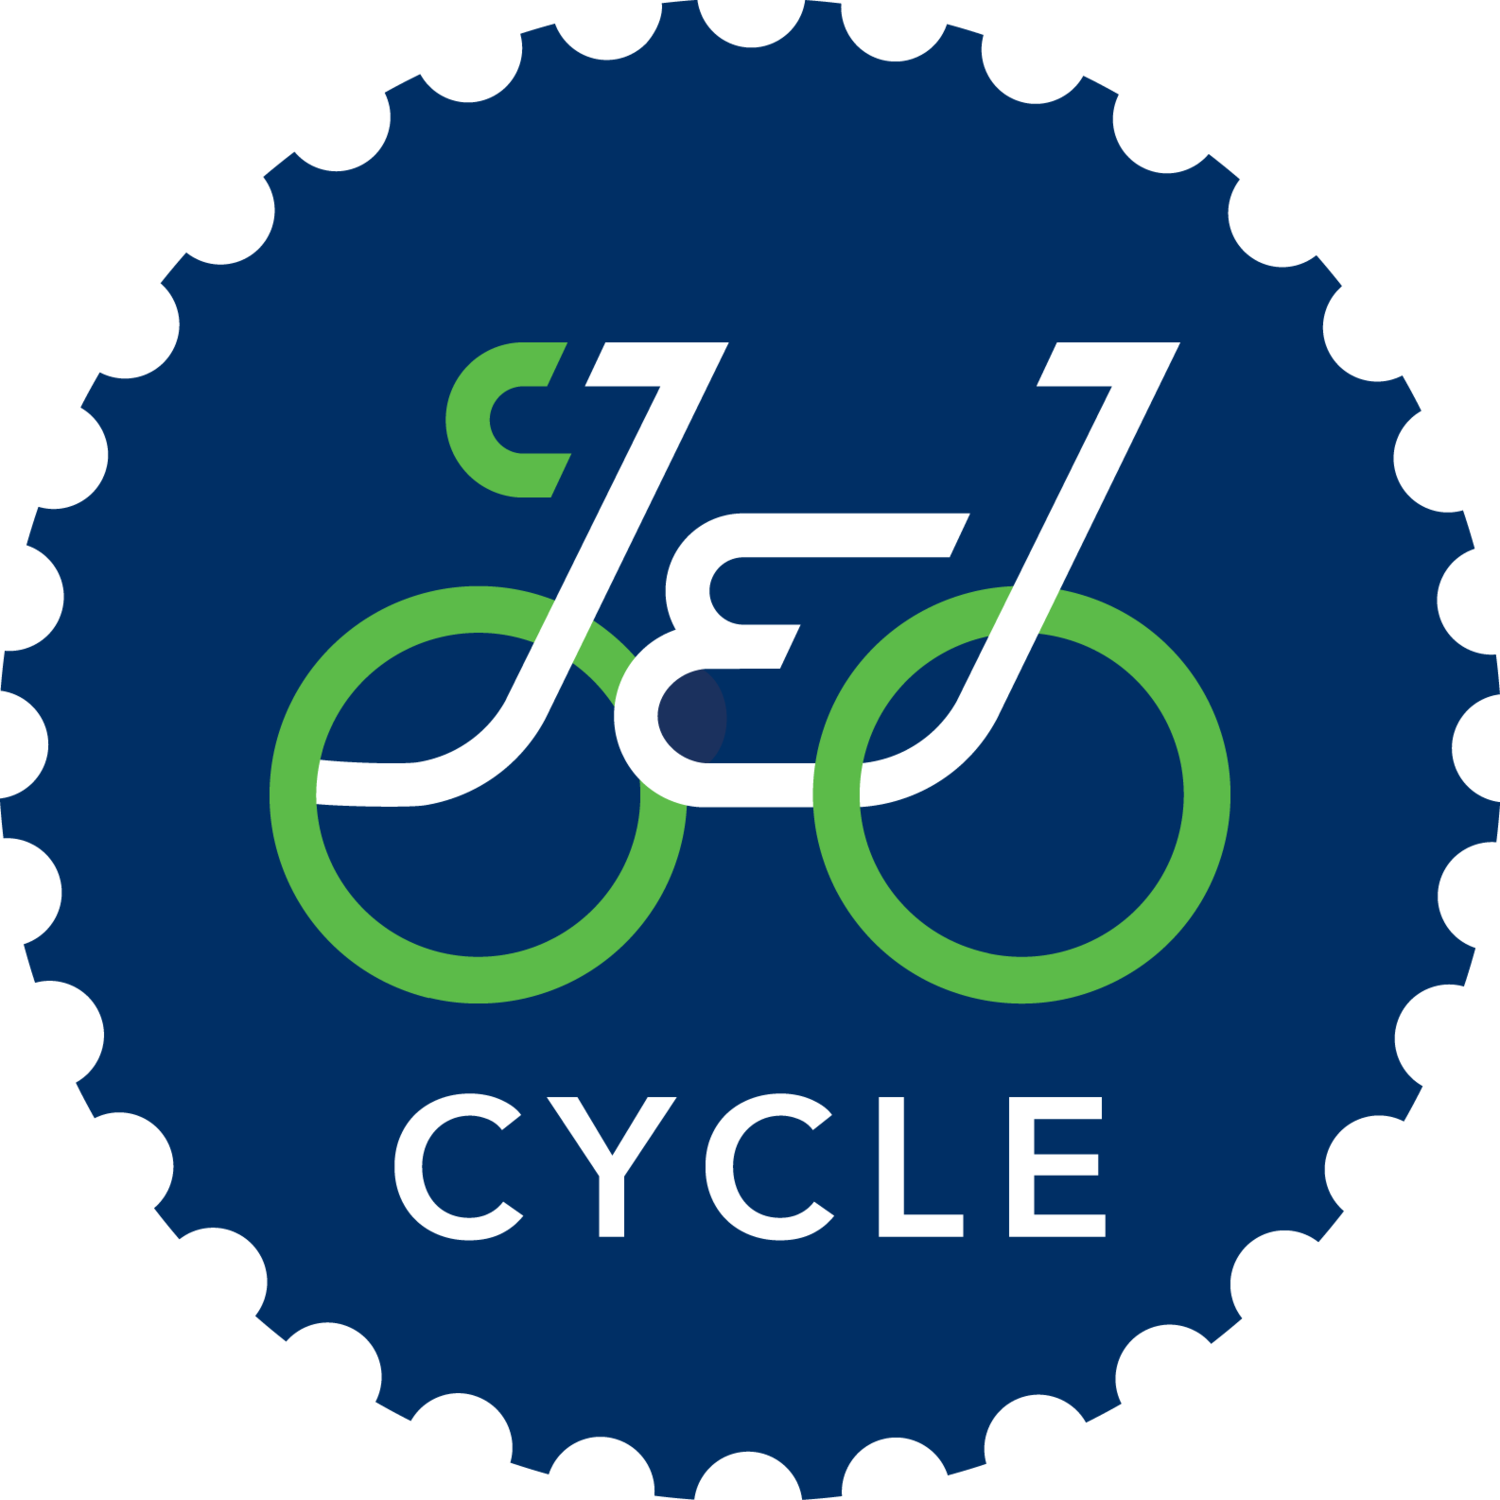 J&J Cycle